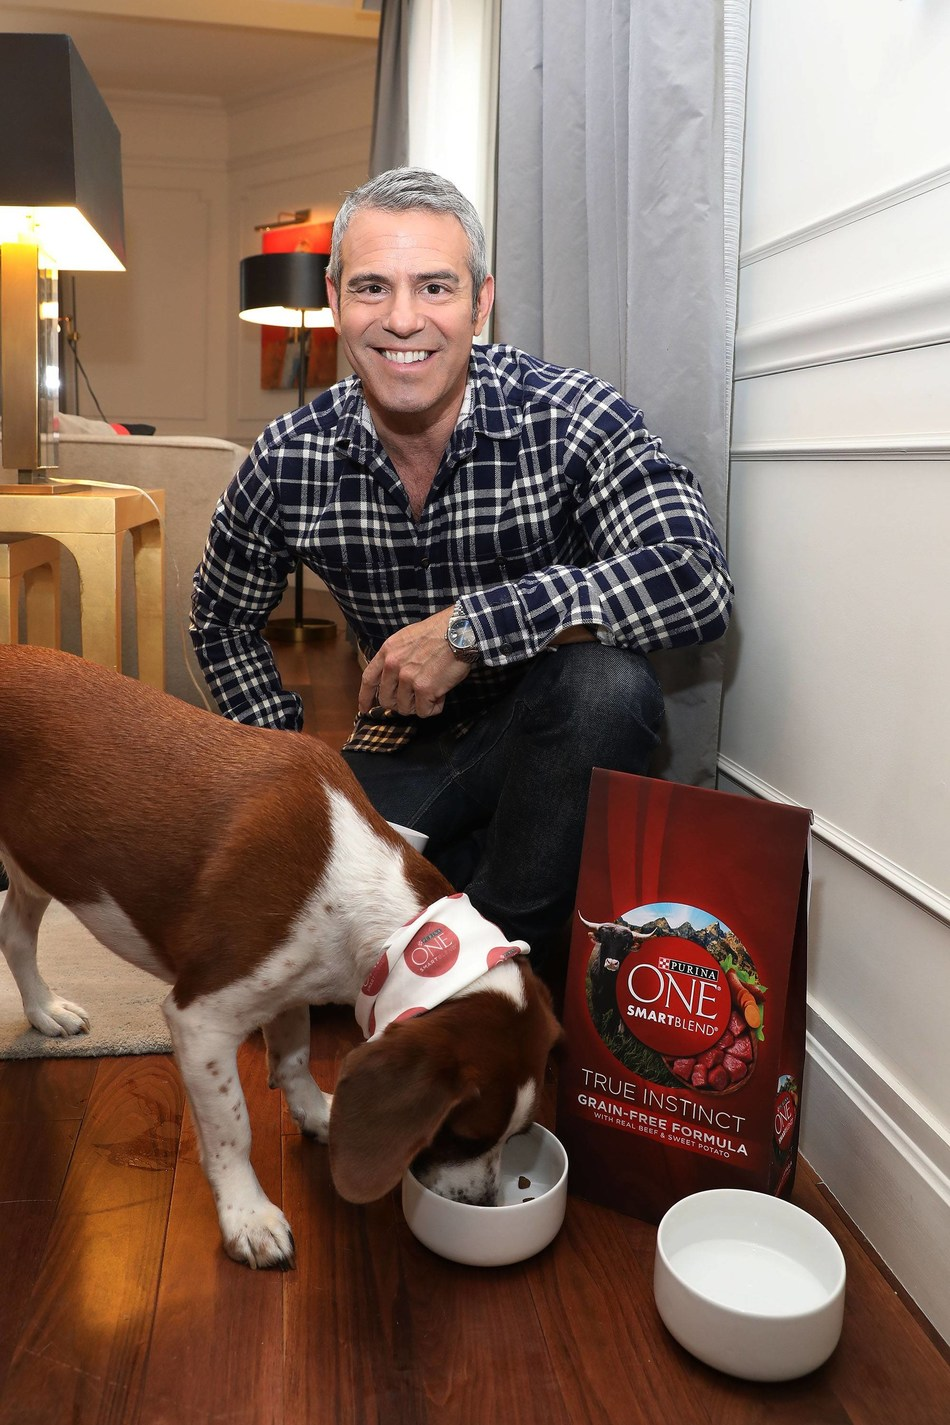 Andy Cohen's rescue dog, Wacha, enjoys a Purina ONE lunch on Thursday, April 20, 2017, in New York. Along with a $20,000 donation to North Shore Animal League America's Mutt-i-grees program, Purina ONE is partnering with Mutt-i-grees and Andy Cohen as part of its ONE Difference Campaign, which focuses on nourishing the lives of both students and shelter dogs across the country. (Amy Sussman/AP Images for Purina ONE).